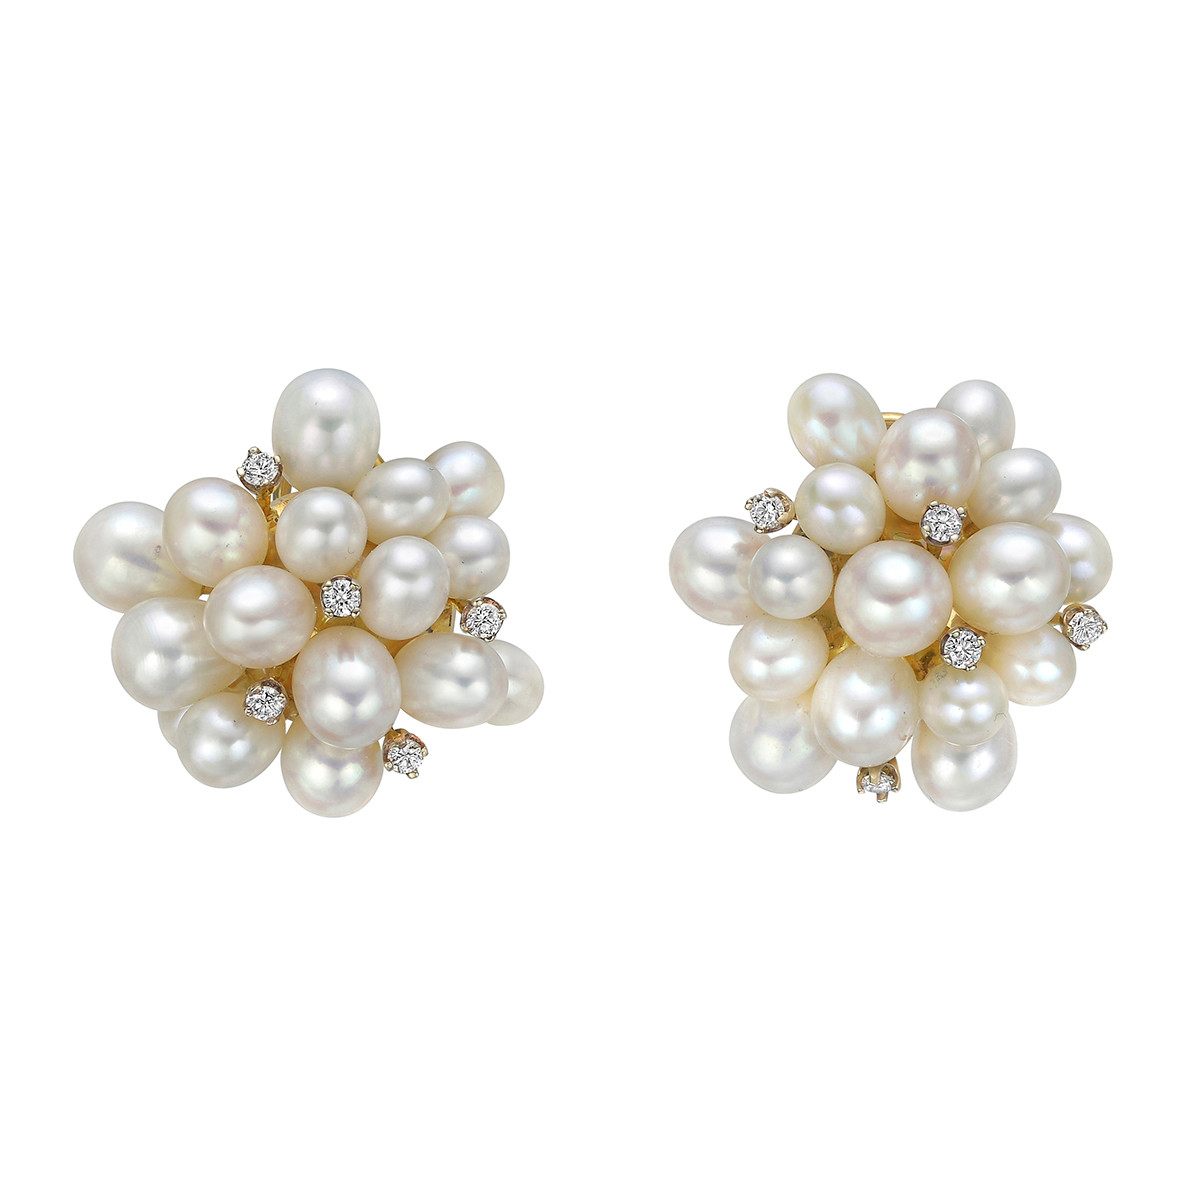 Pearl & Diamond 'Pom Pom' Earrings